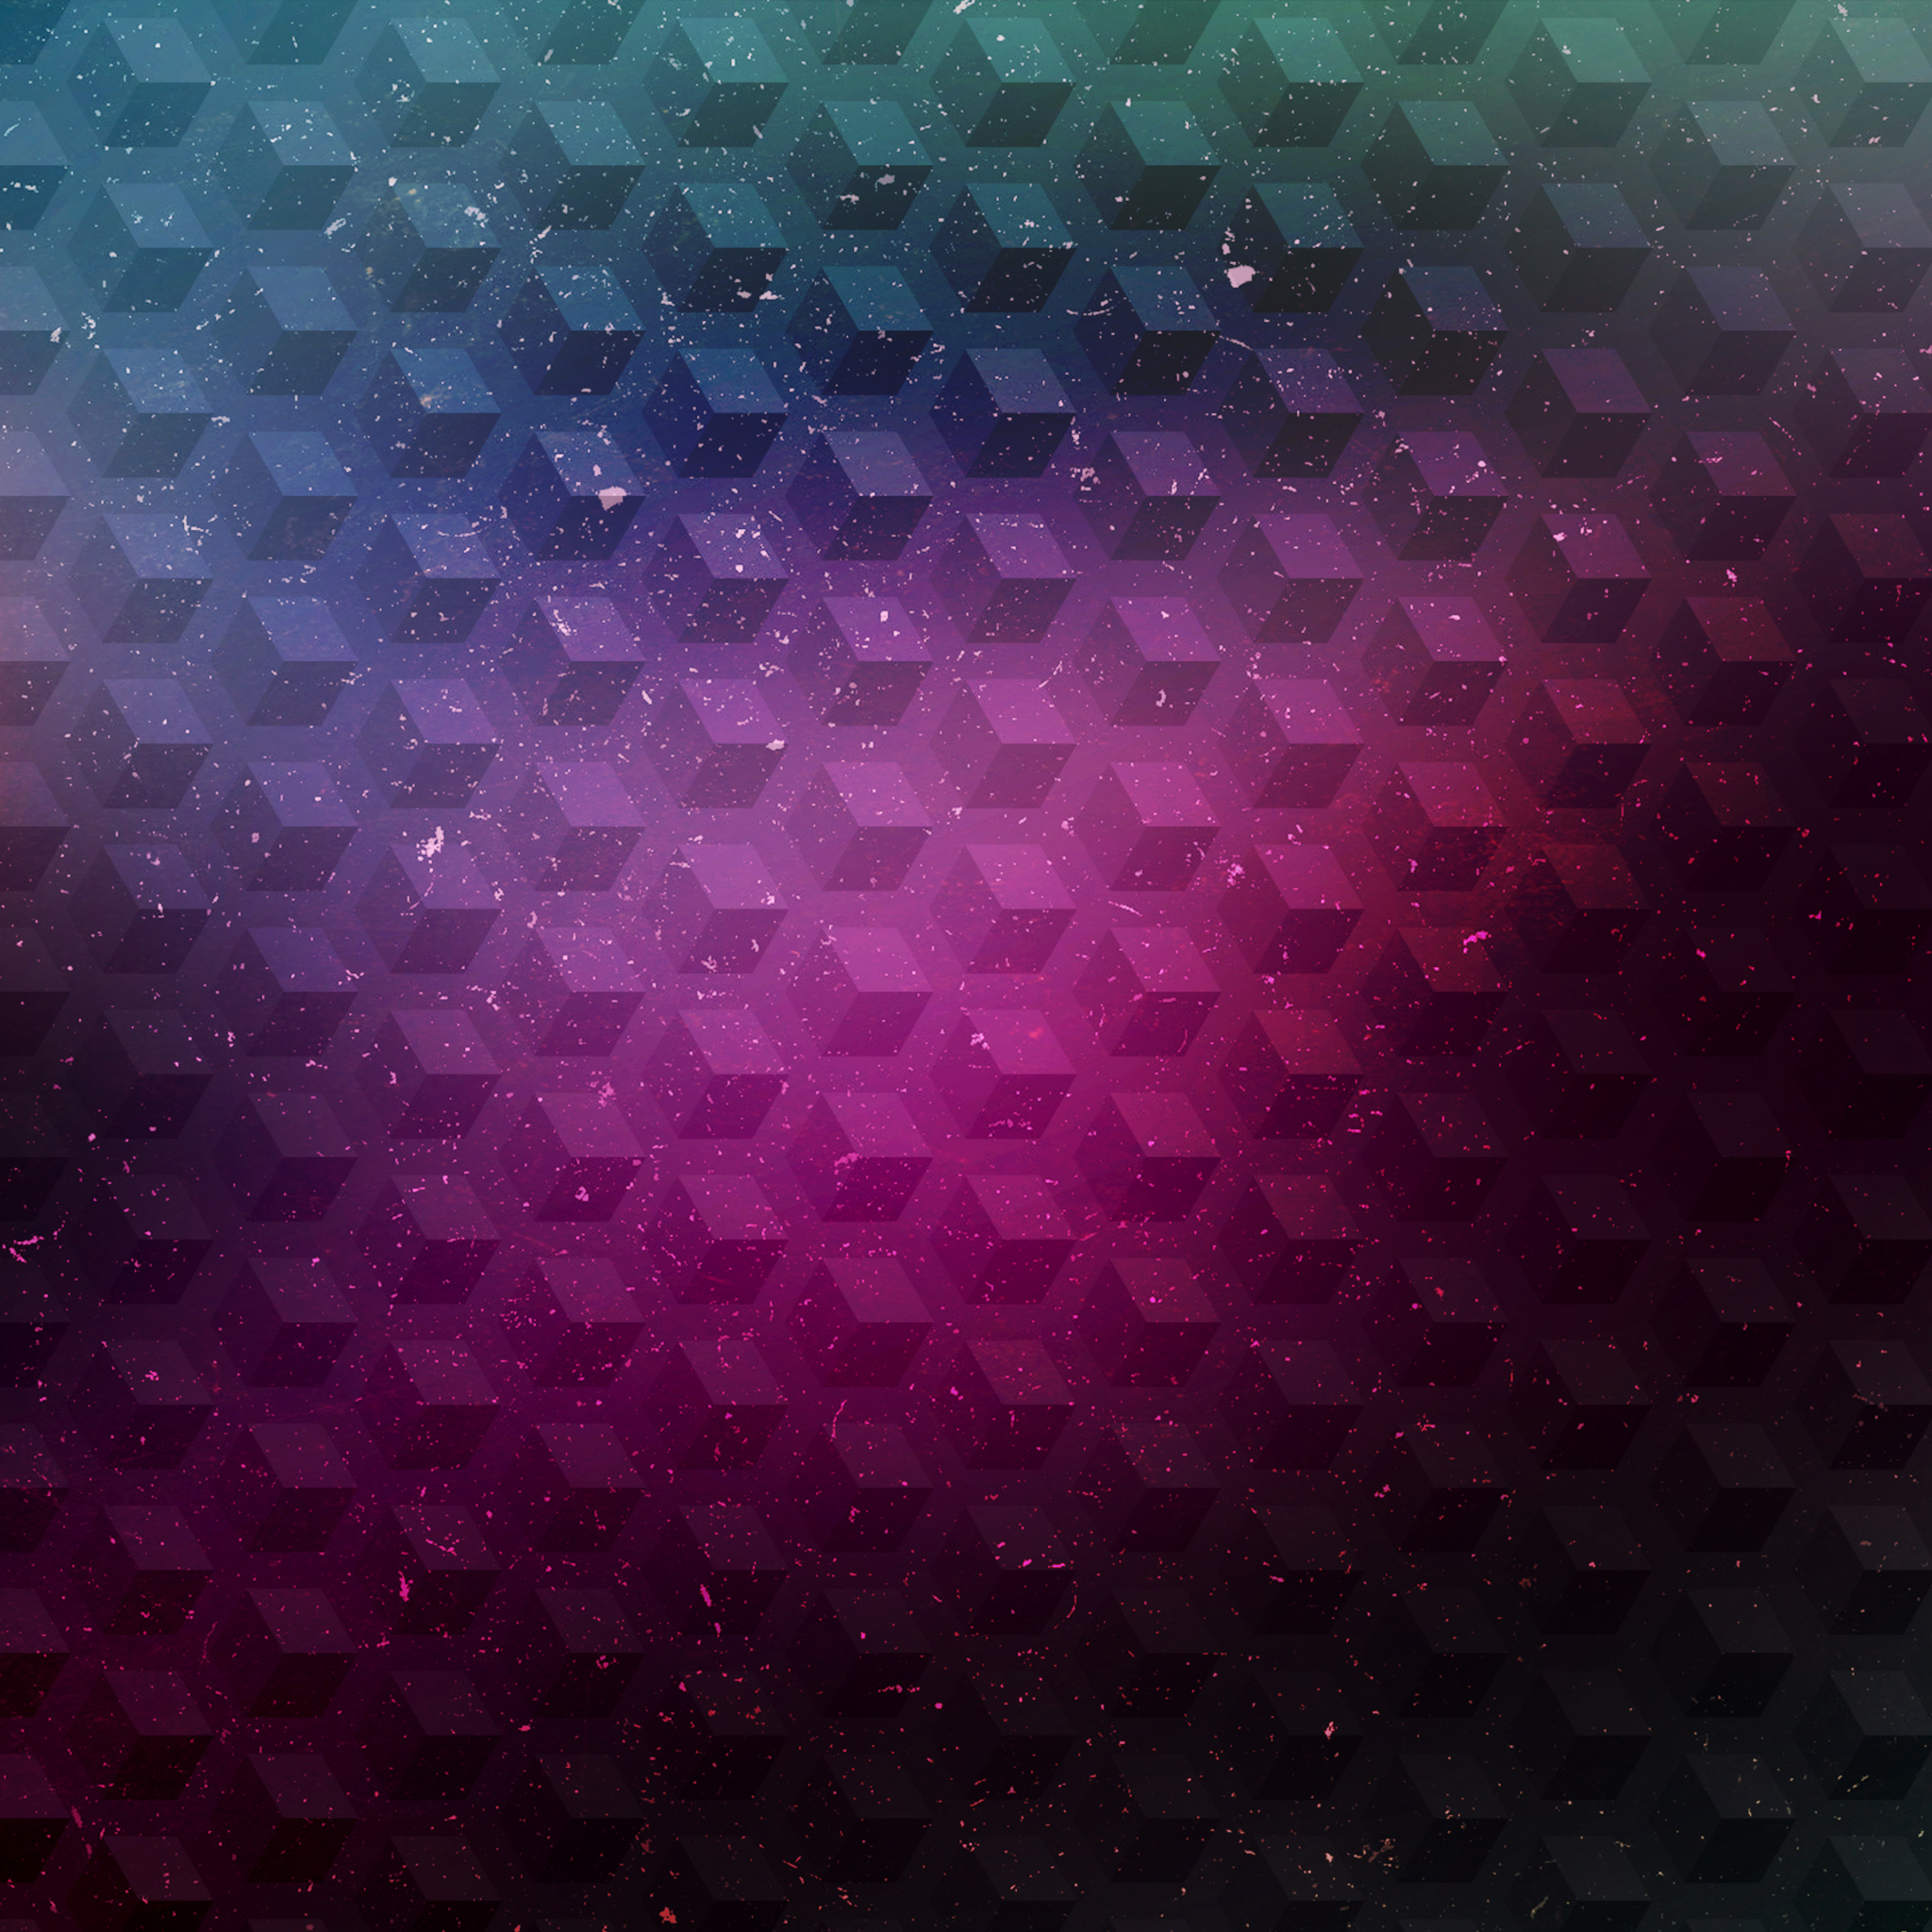 2048x2048 cube abstract ipad air hd 4k wallpapers, images